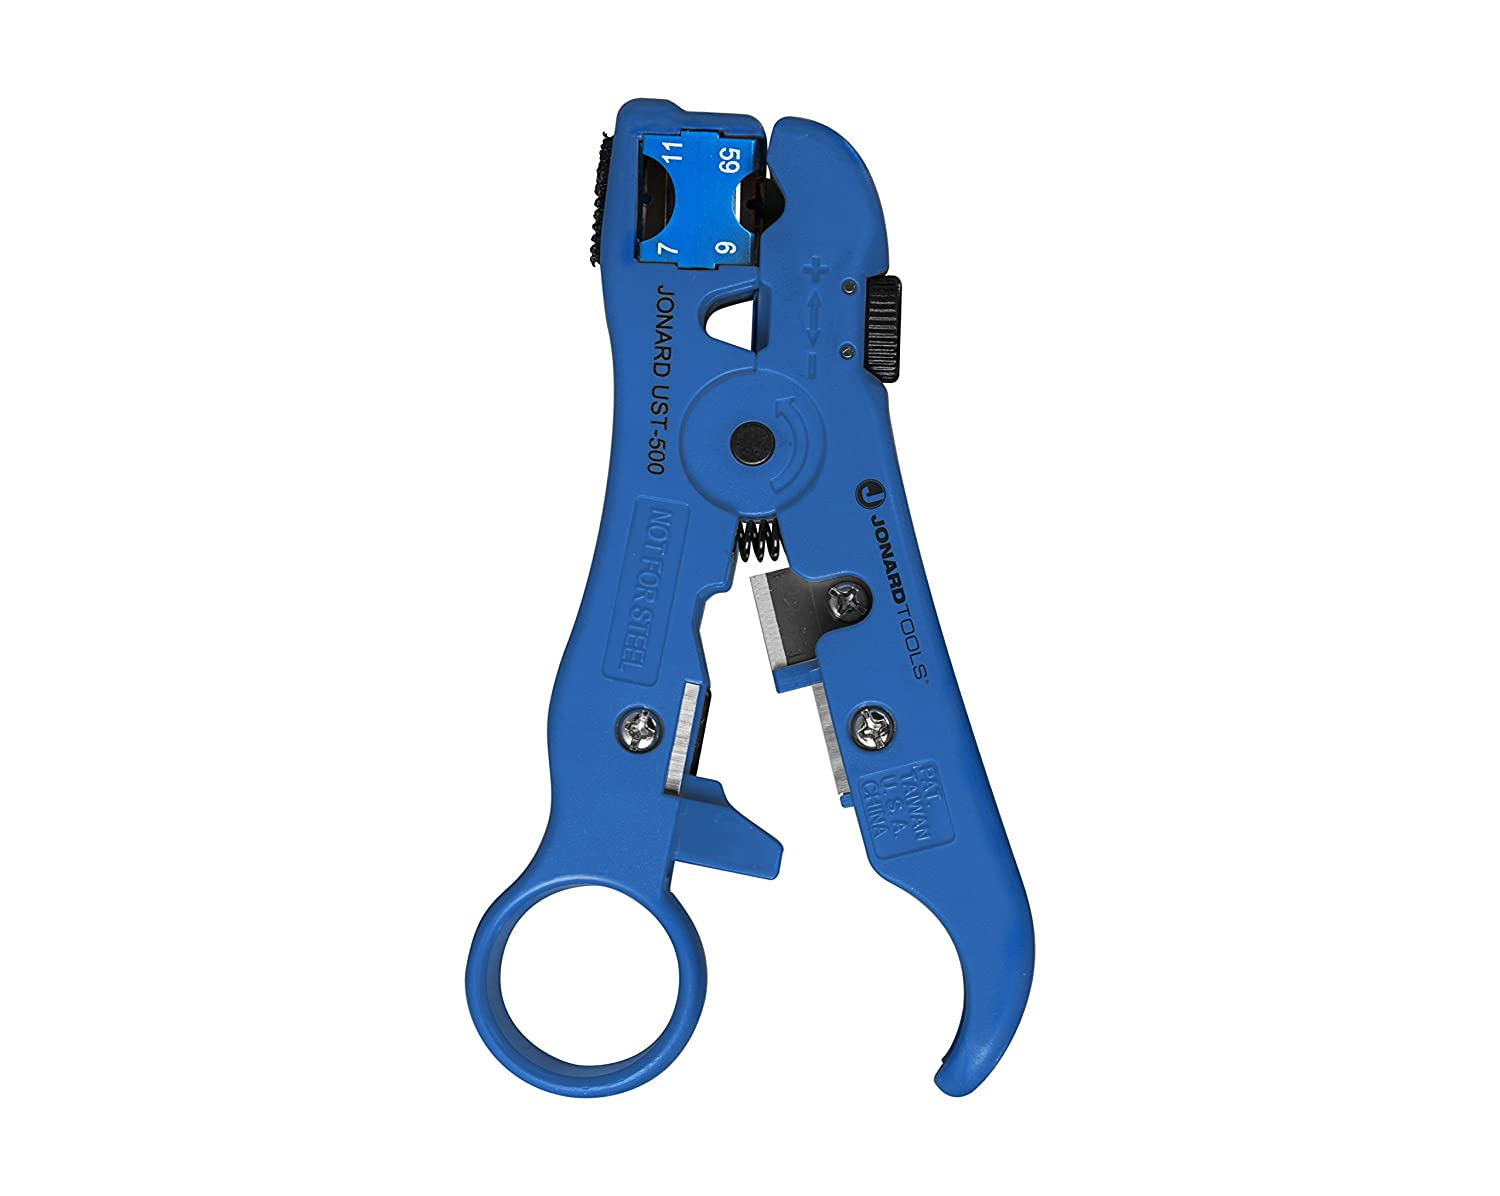 Jonard UST-596 Universal Cable Stripper for RG59 and RG6 Coax Cable ...